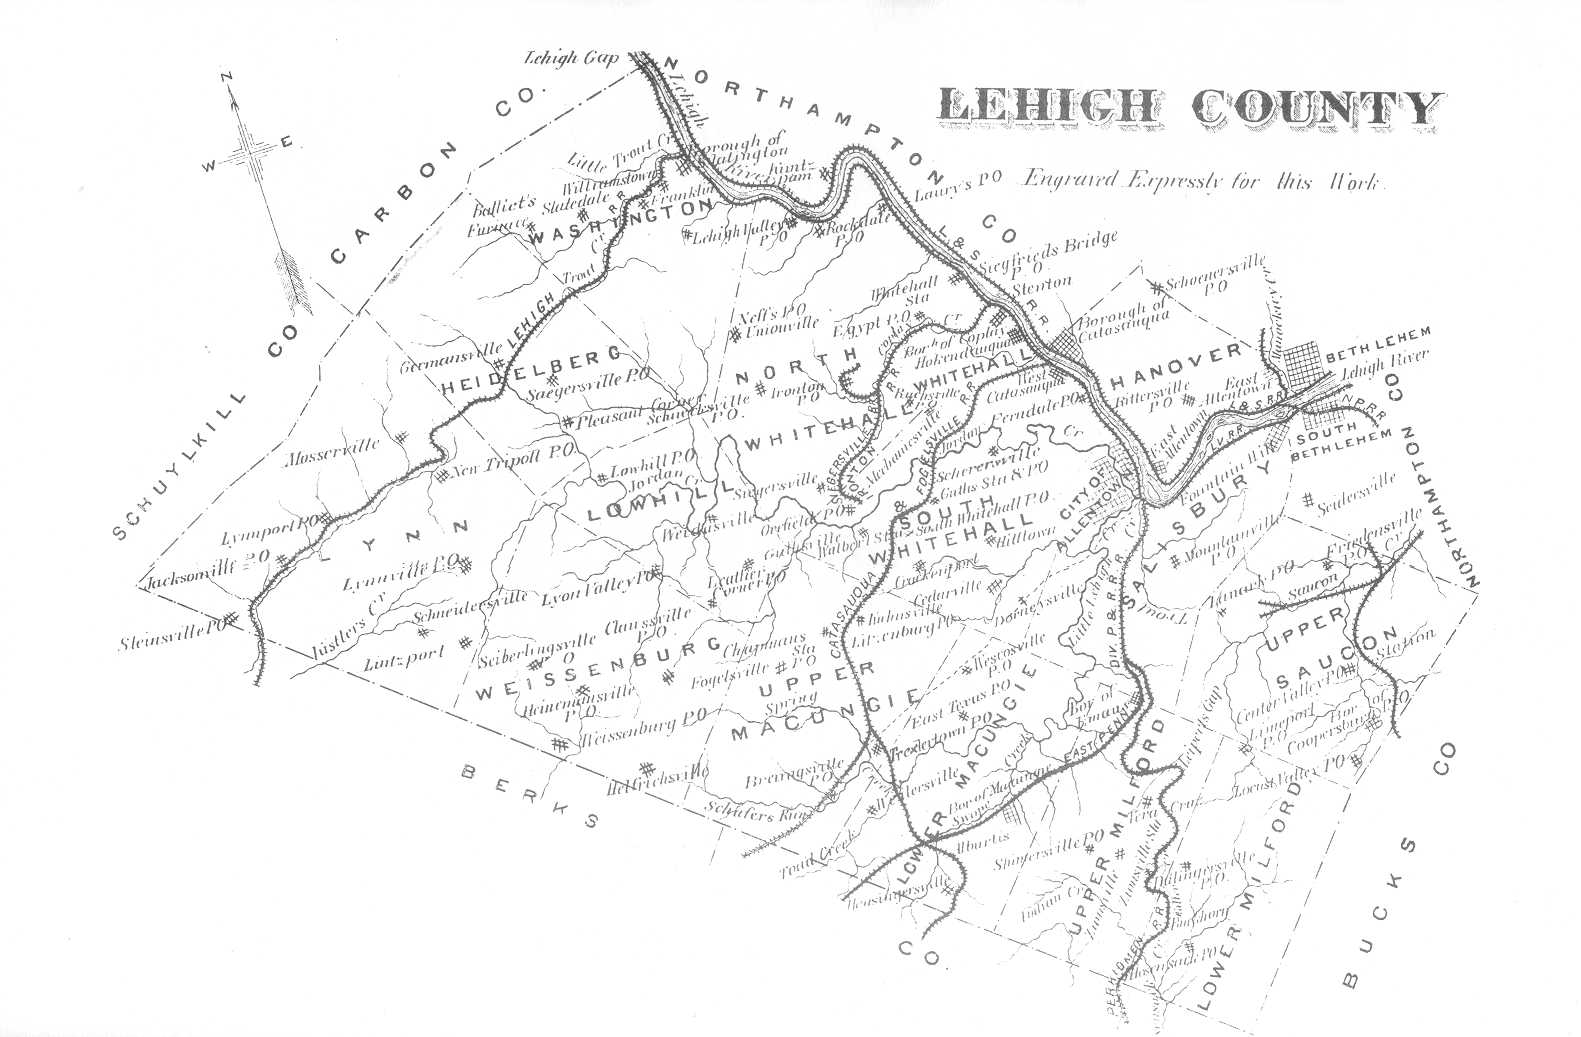 Map of Lehigh County, PA 1884 Lehigh County Pa Map on district township pa map, schuylkill haven pa map, center valley pa map, bucks co pa map, saucon valley pa map, red land pa map, schuylkill river pa map, lehigh pennsylvania map, lehigh station pa, lehigh county street map, allentown map, monocacy creek pa map, lehigh valley pennsylvania, mary d pa map, pottsville pa map, lehigh valley railroad maps, lehigh valley pa counties, slate belt pa map, french creek state park pa map, lehigh and northampton county map,